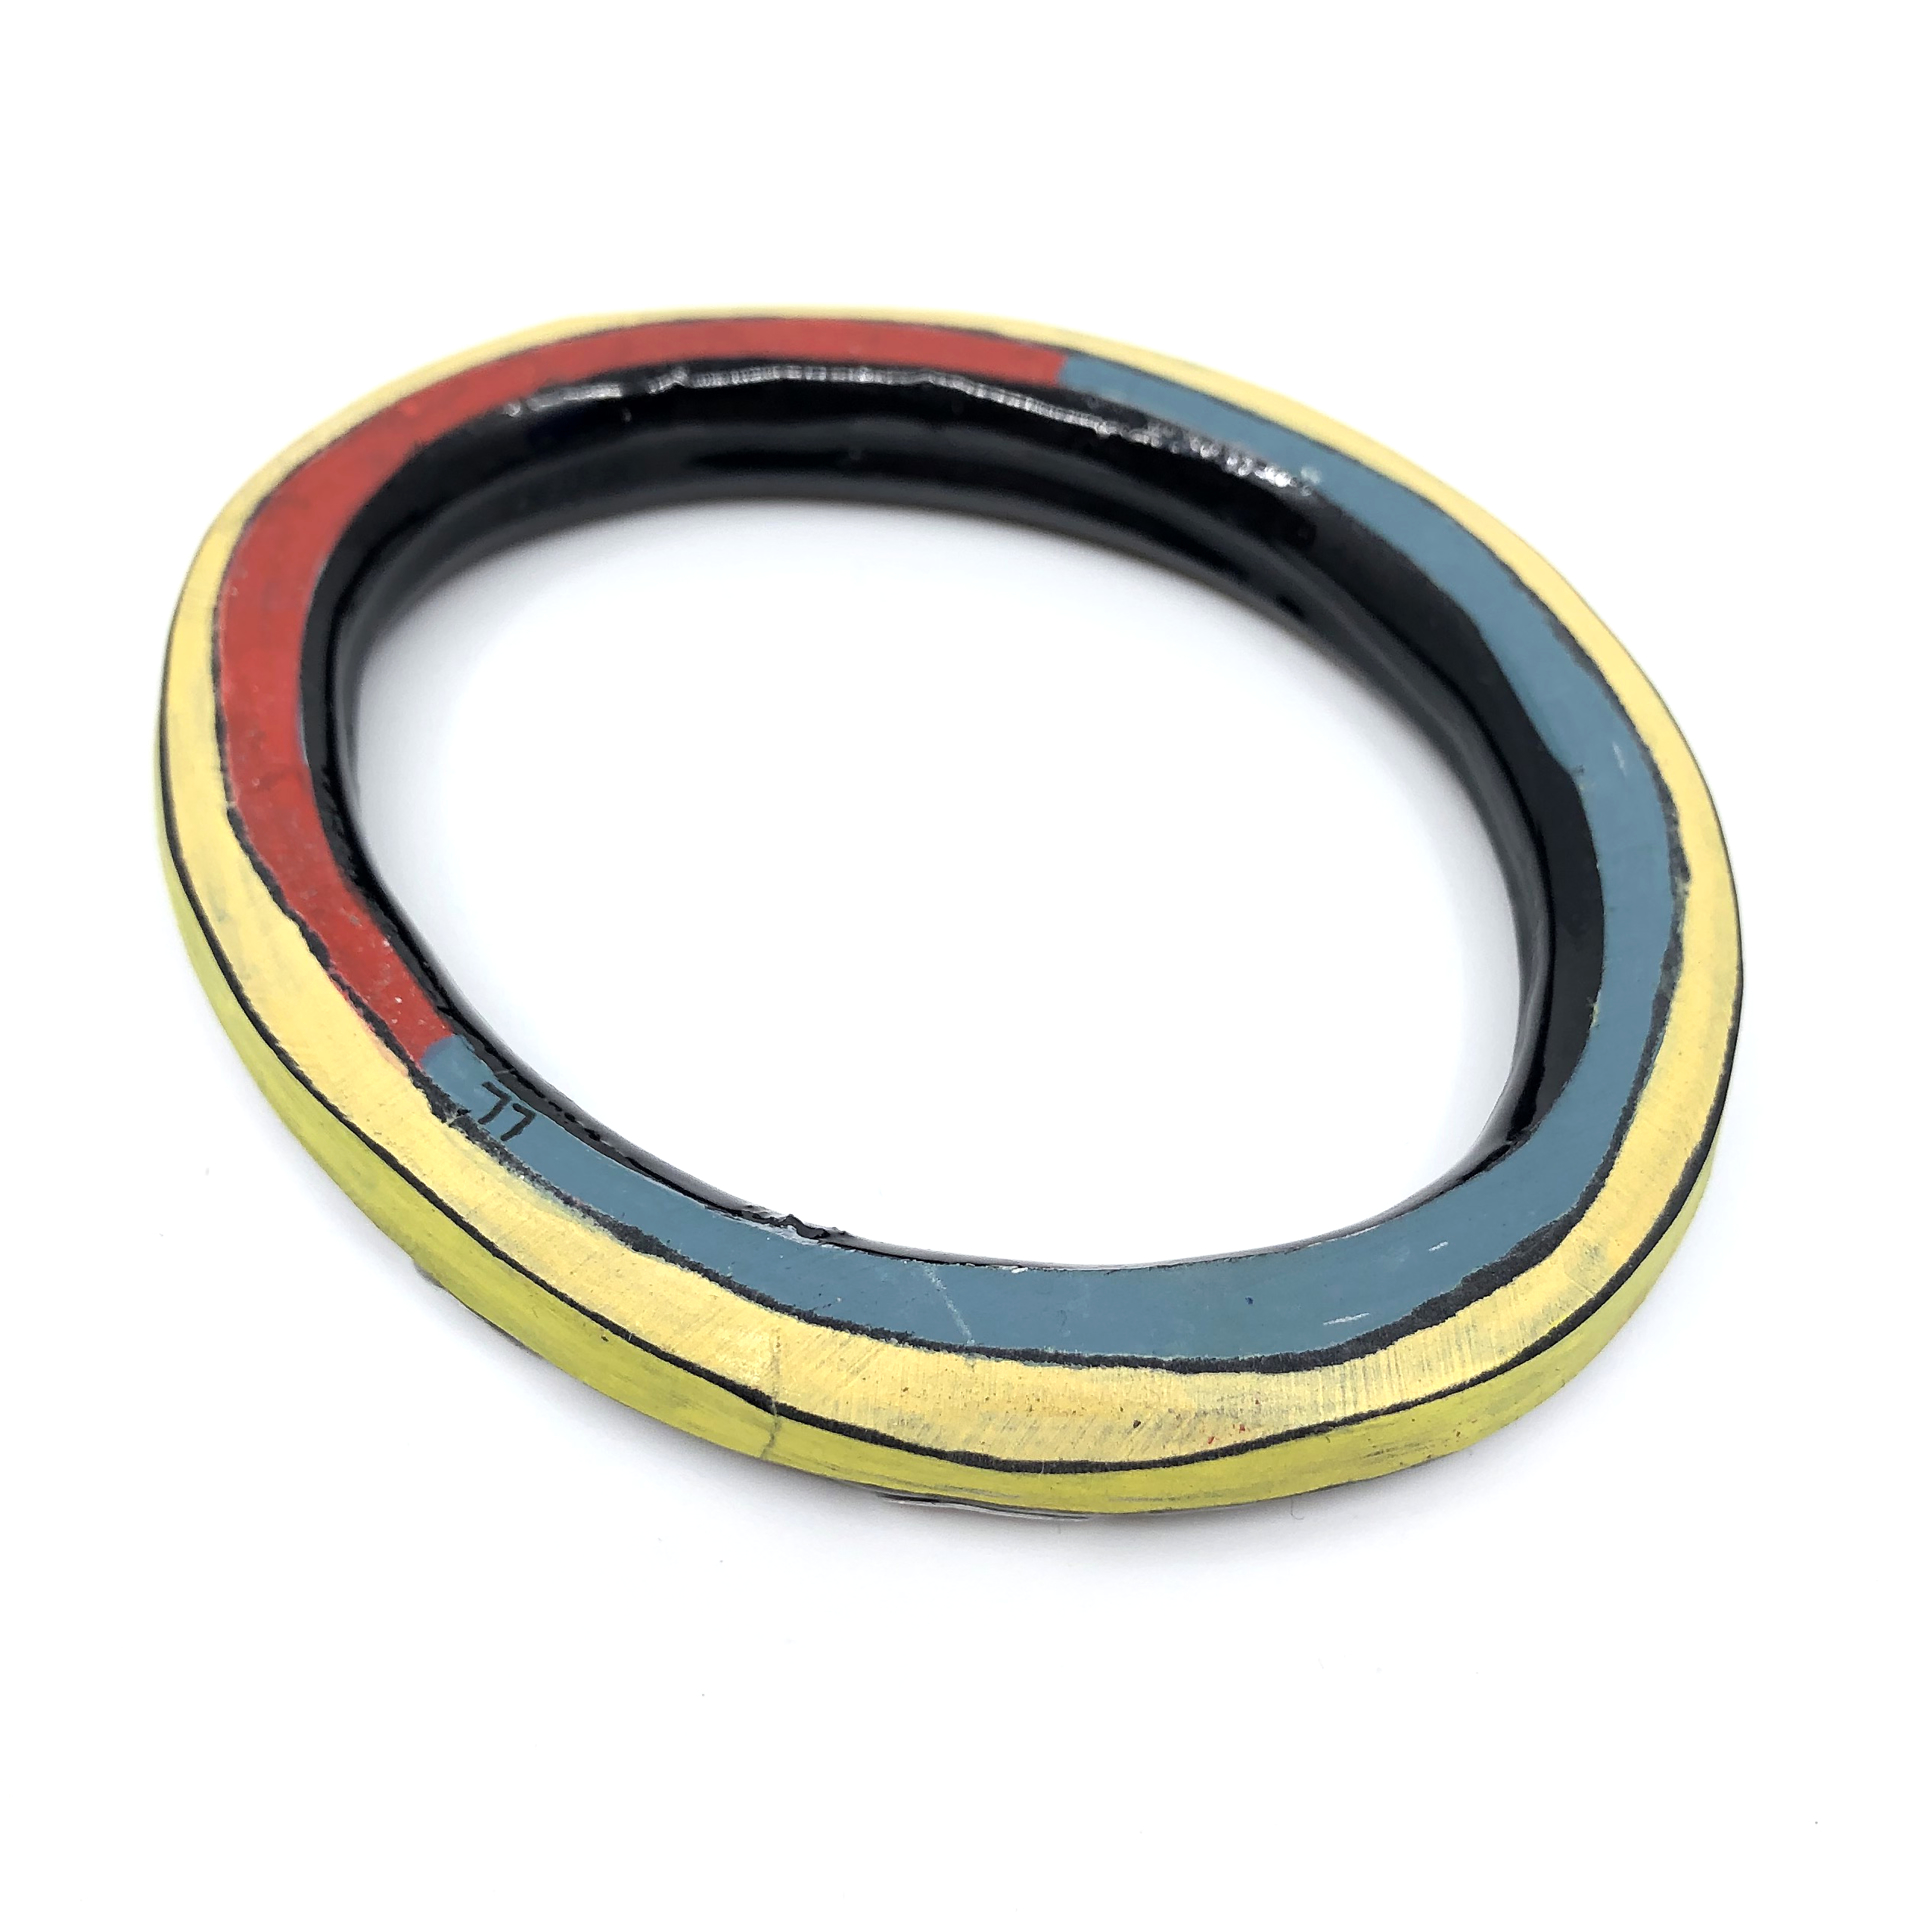 Bangle (red/yellow/blue) by Lindsay Locatelli